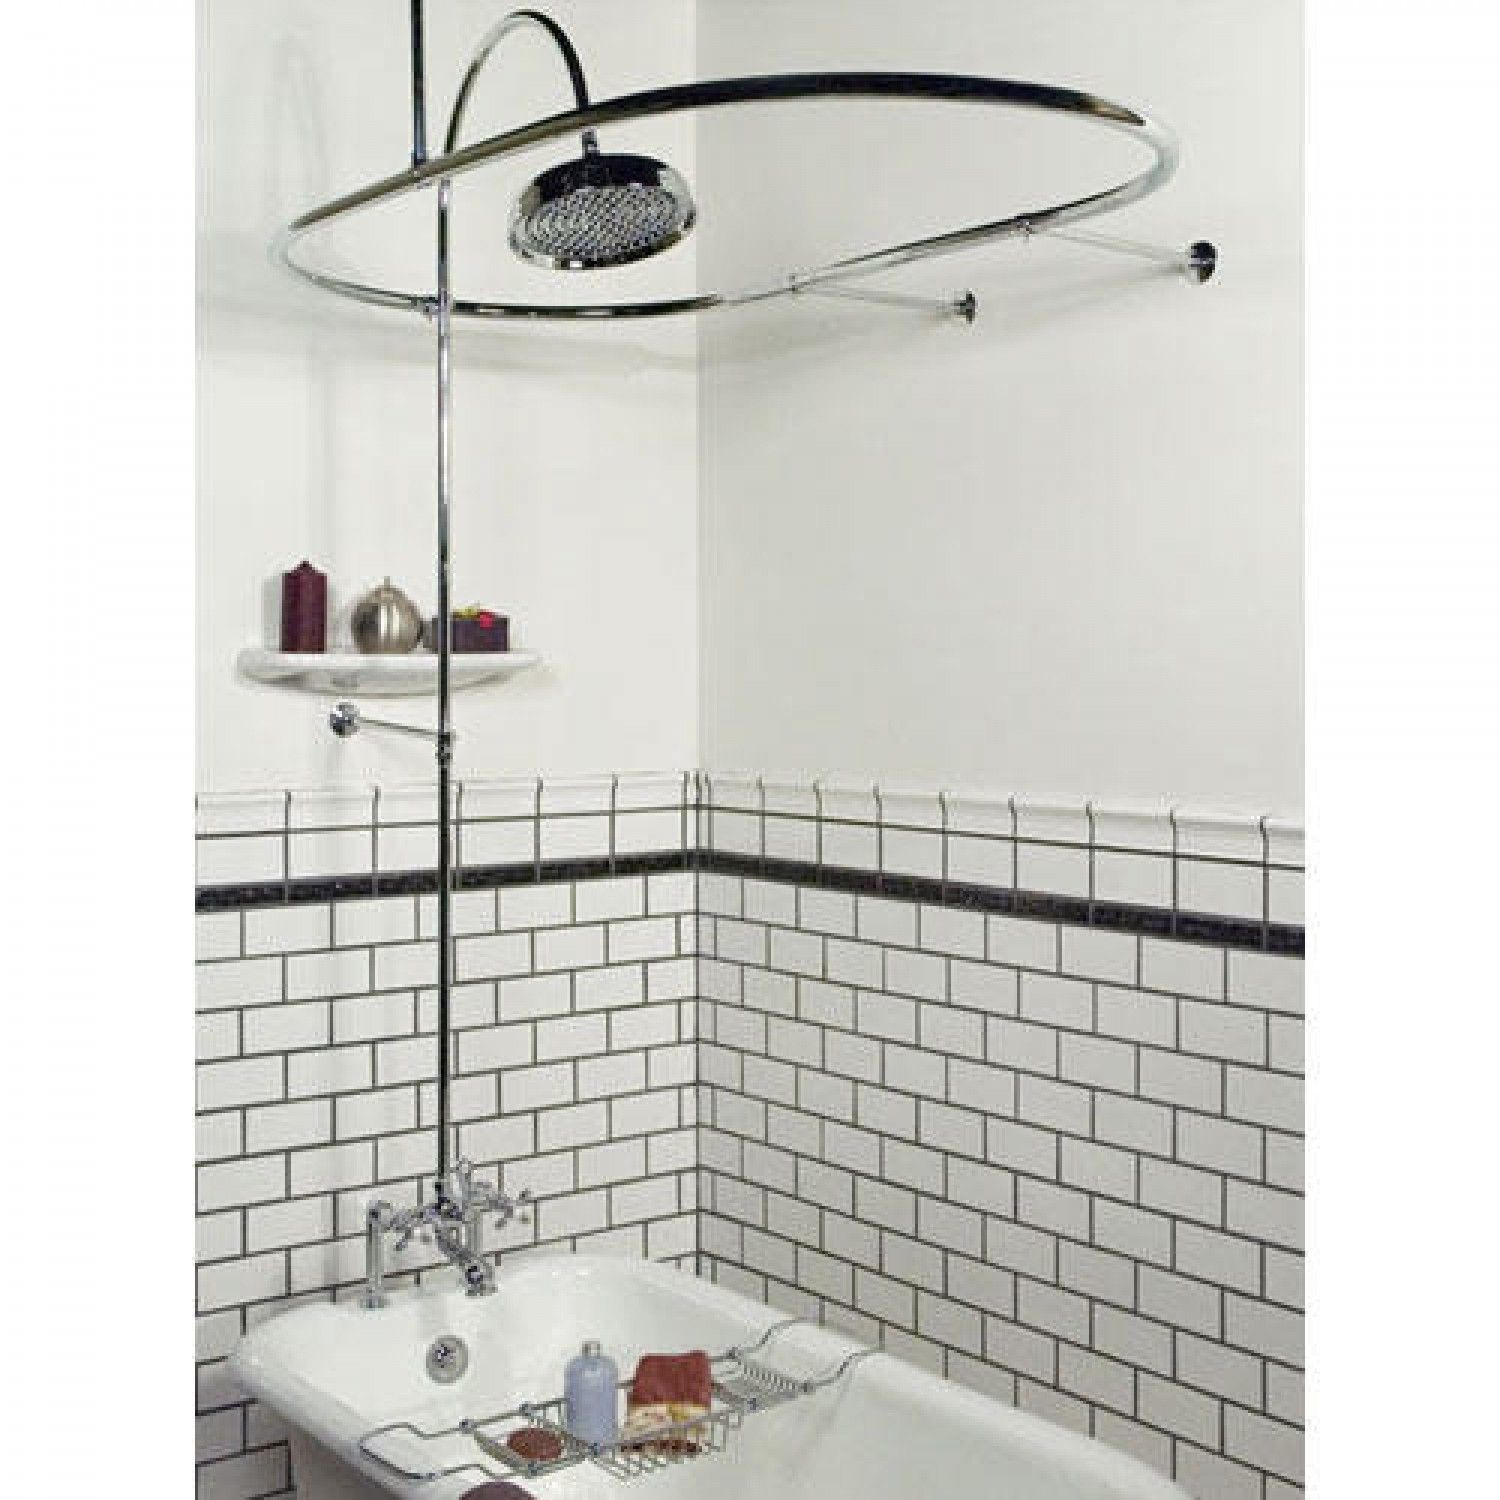 Sheffield Deck Mount Hotel Style Shower Conversion Kit  Clawfoot Tub Kits